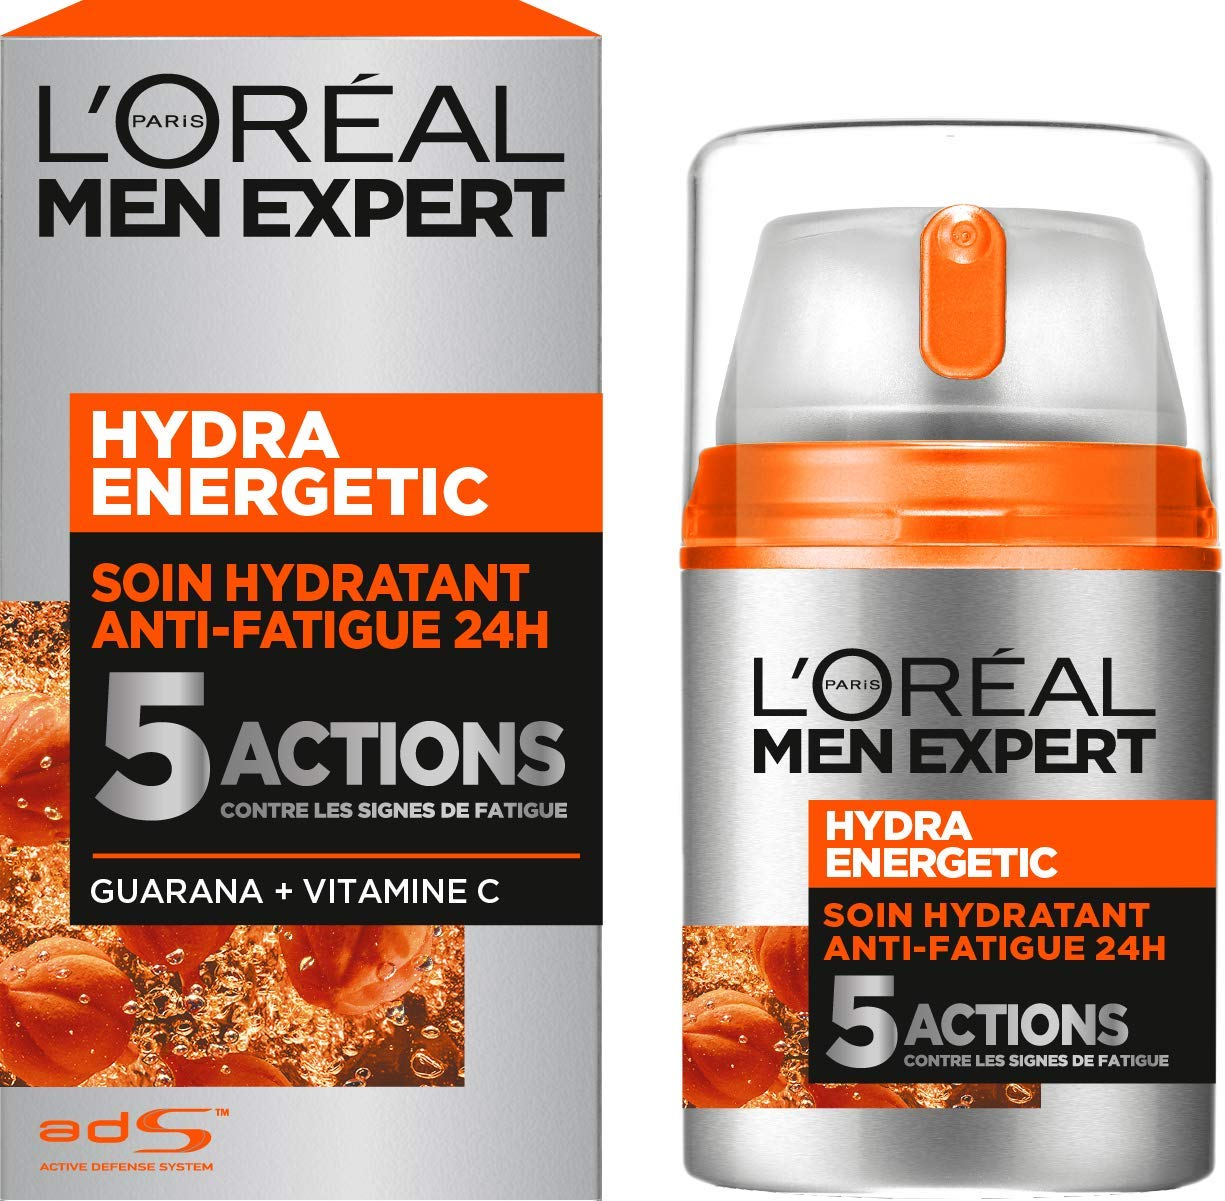 L'Oréal Men Expert Hydra Energetic Soin Hydratant Anti-Fatigue Visage Homme 50 ml product image